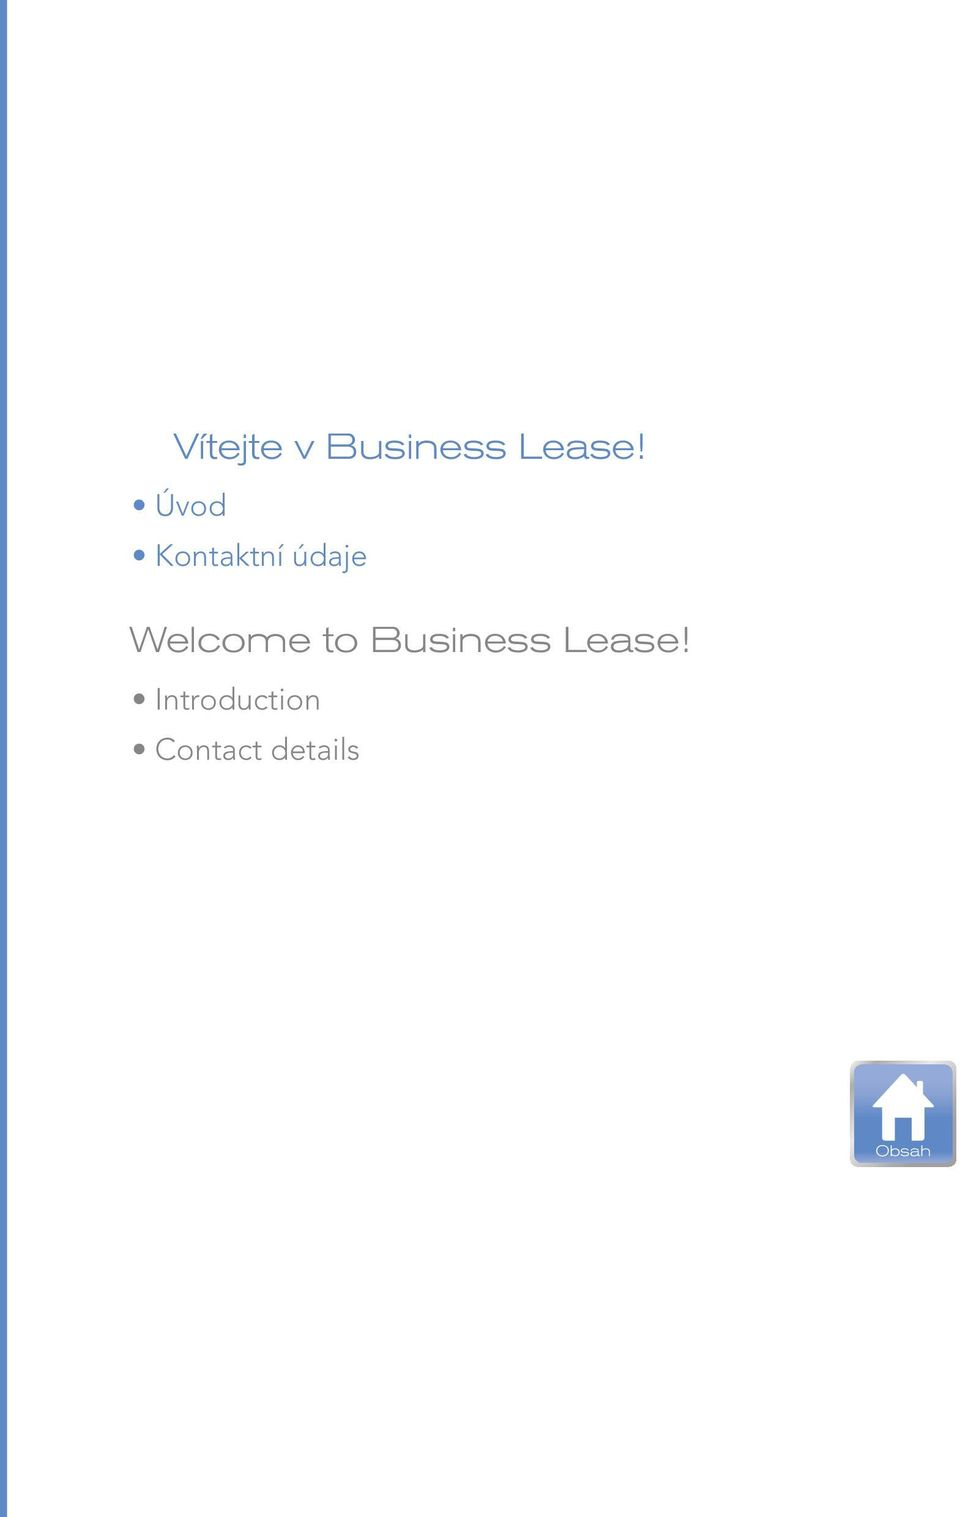 Welcome to Business Lease!